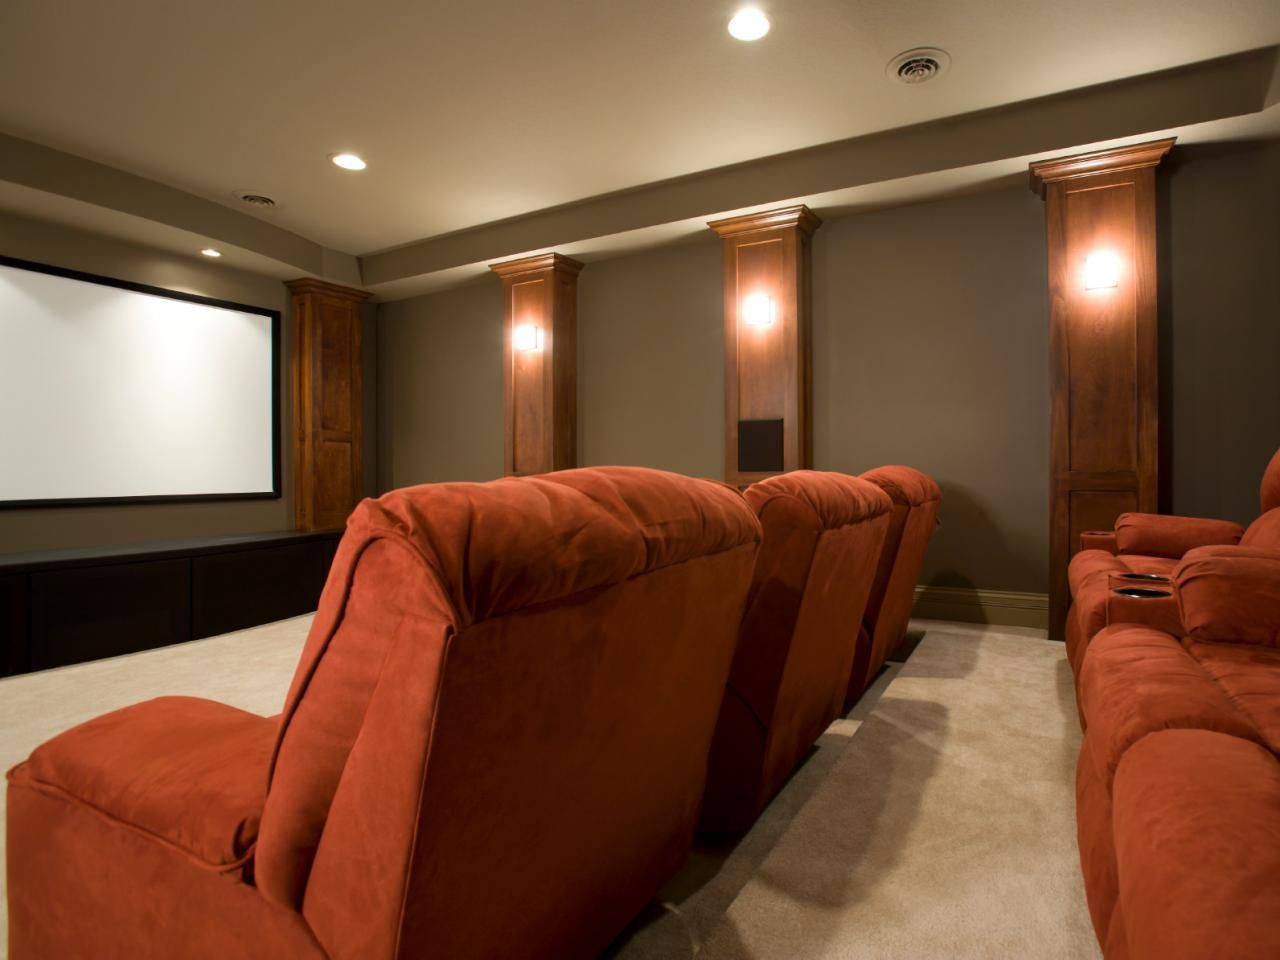 Home Theater Design Basics With Images Home Theater Room